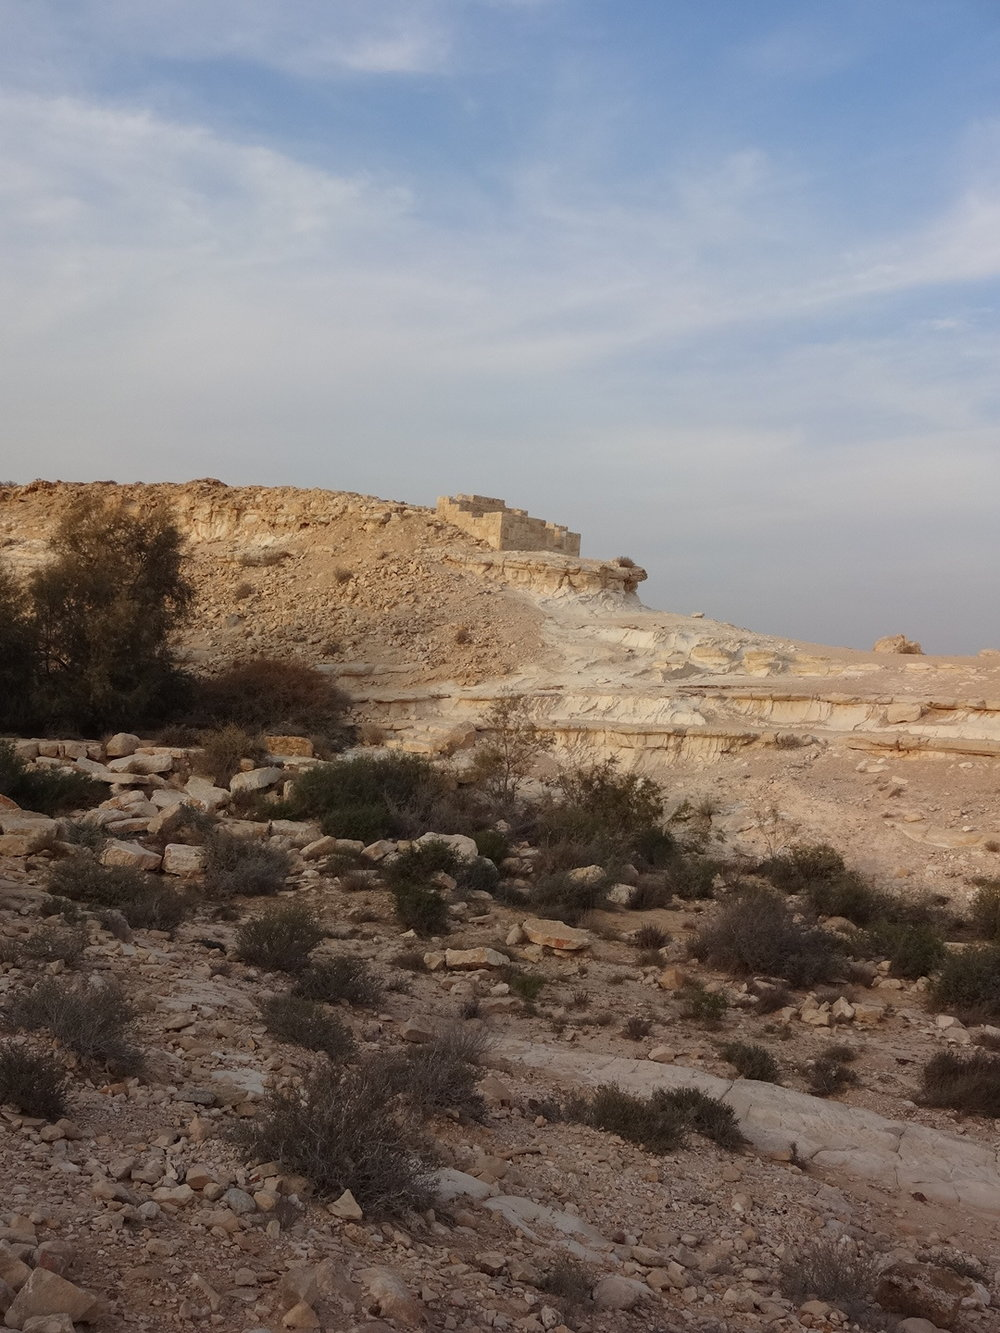 Remnants of a Nabatean lookout at Avdat. Jossef explained that there was access to a very deep acquafir here, and that ancient, skilled culture always guarded the most precious resource in the desert: water.